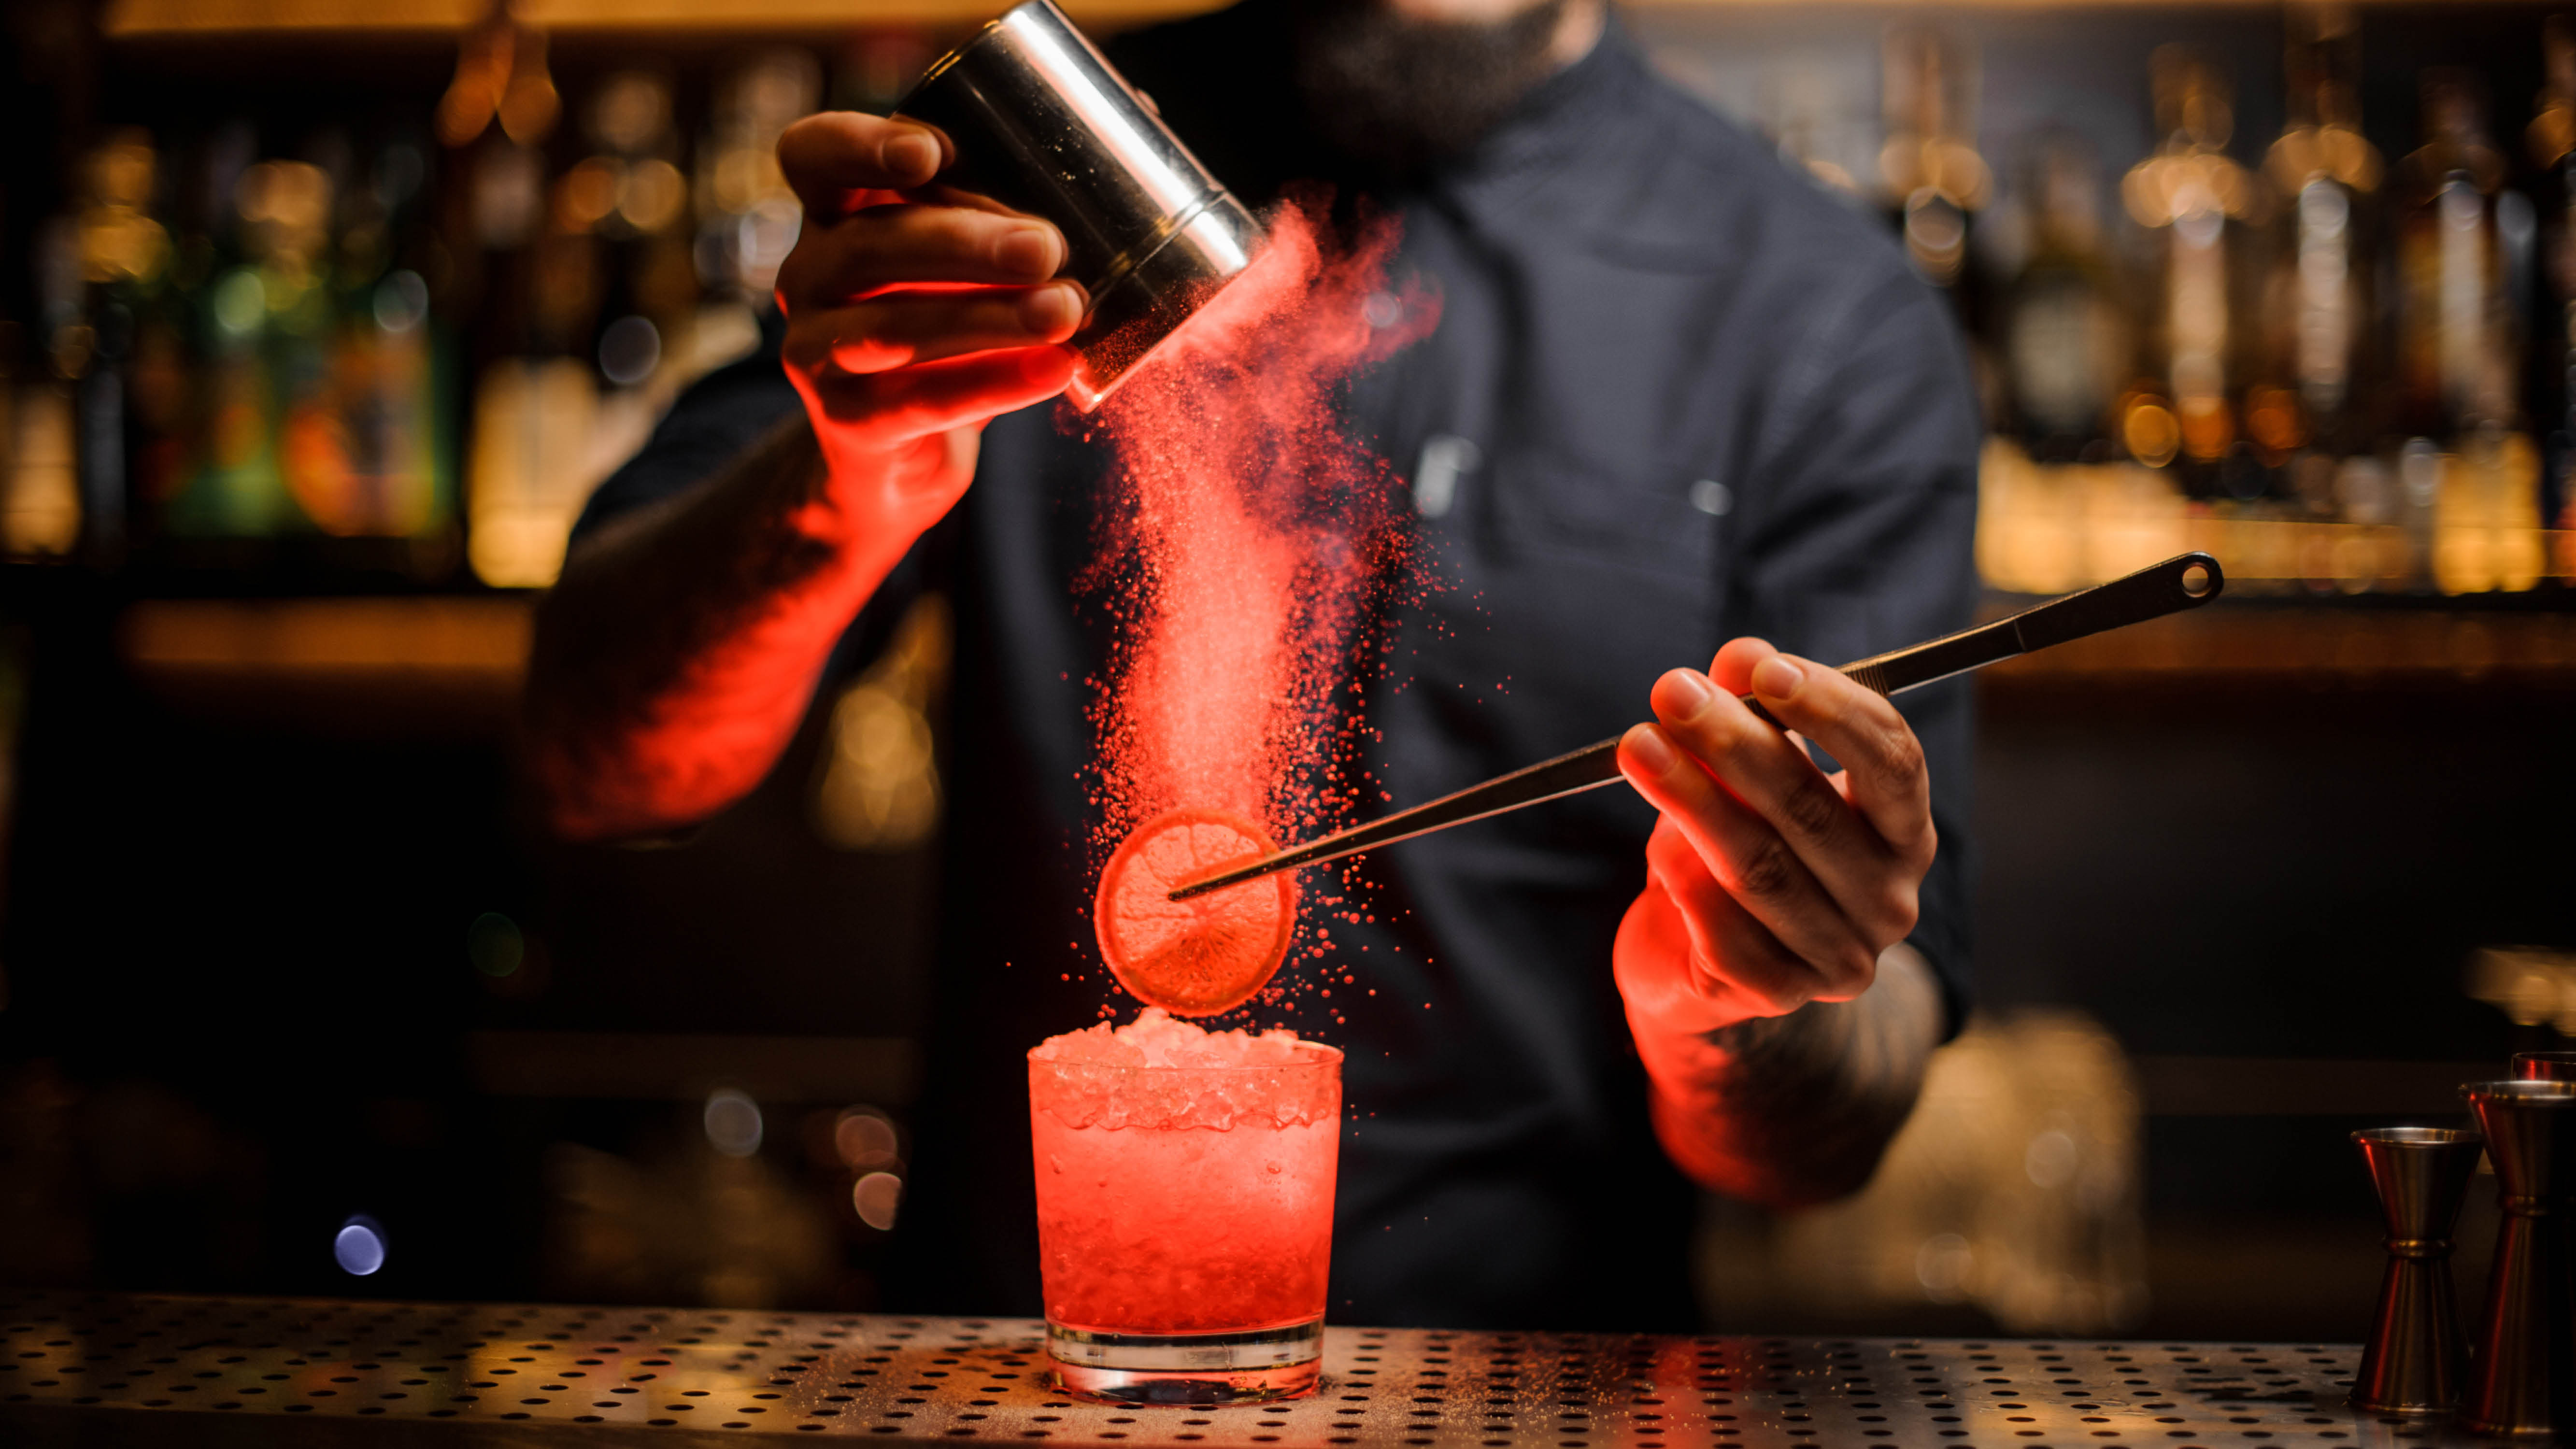 cocoktails-making-cocktail-with-red-light.jpg